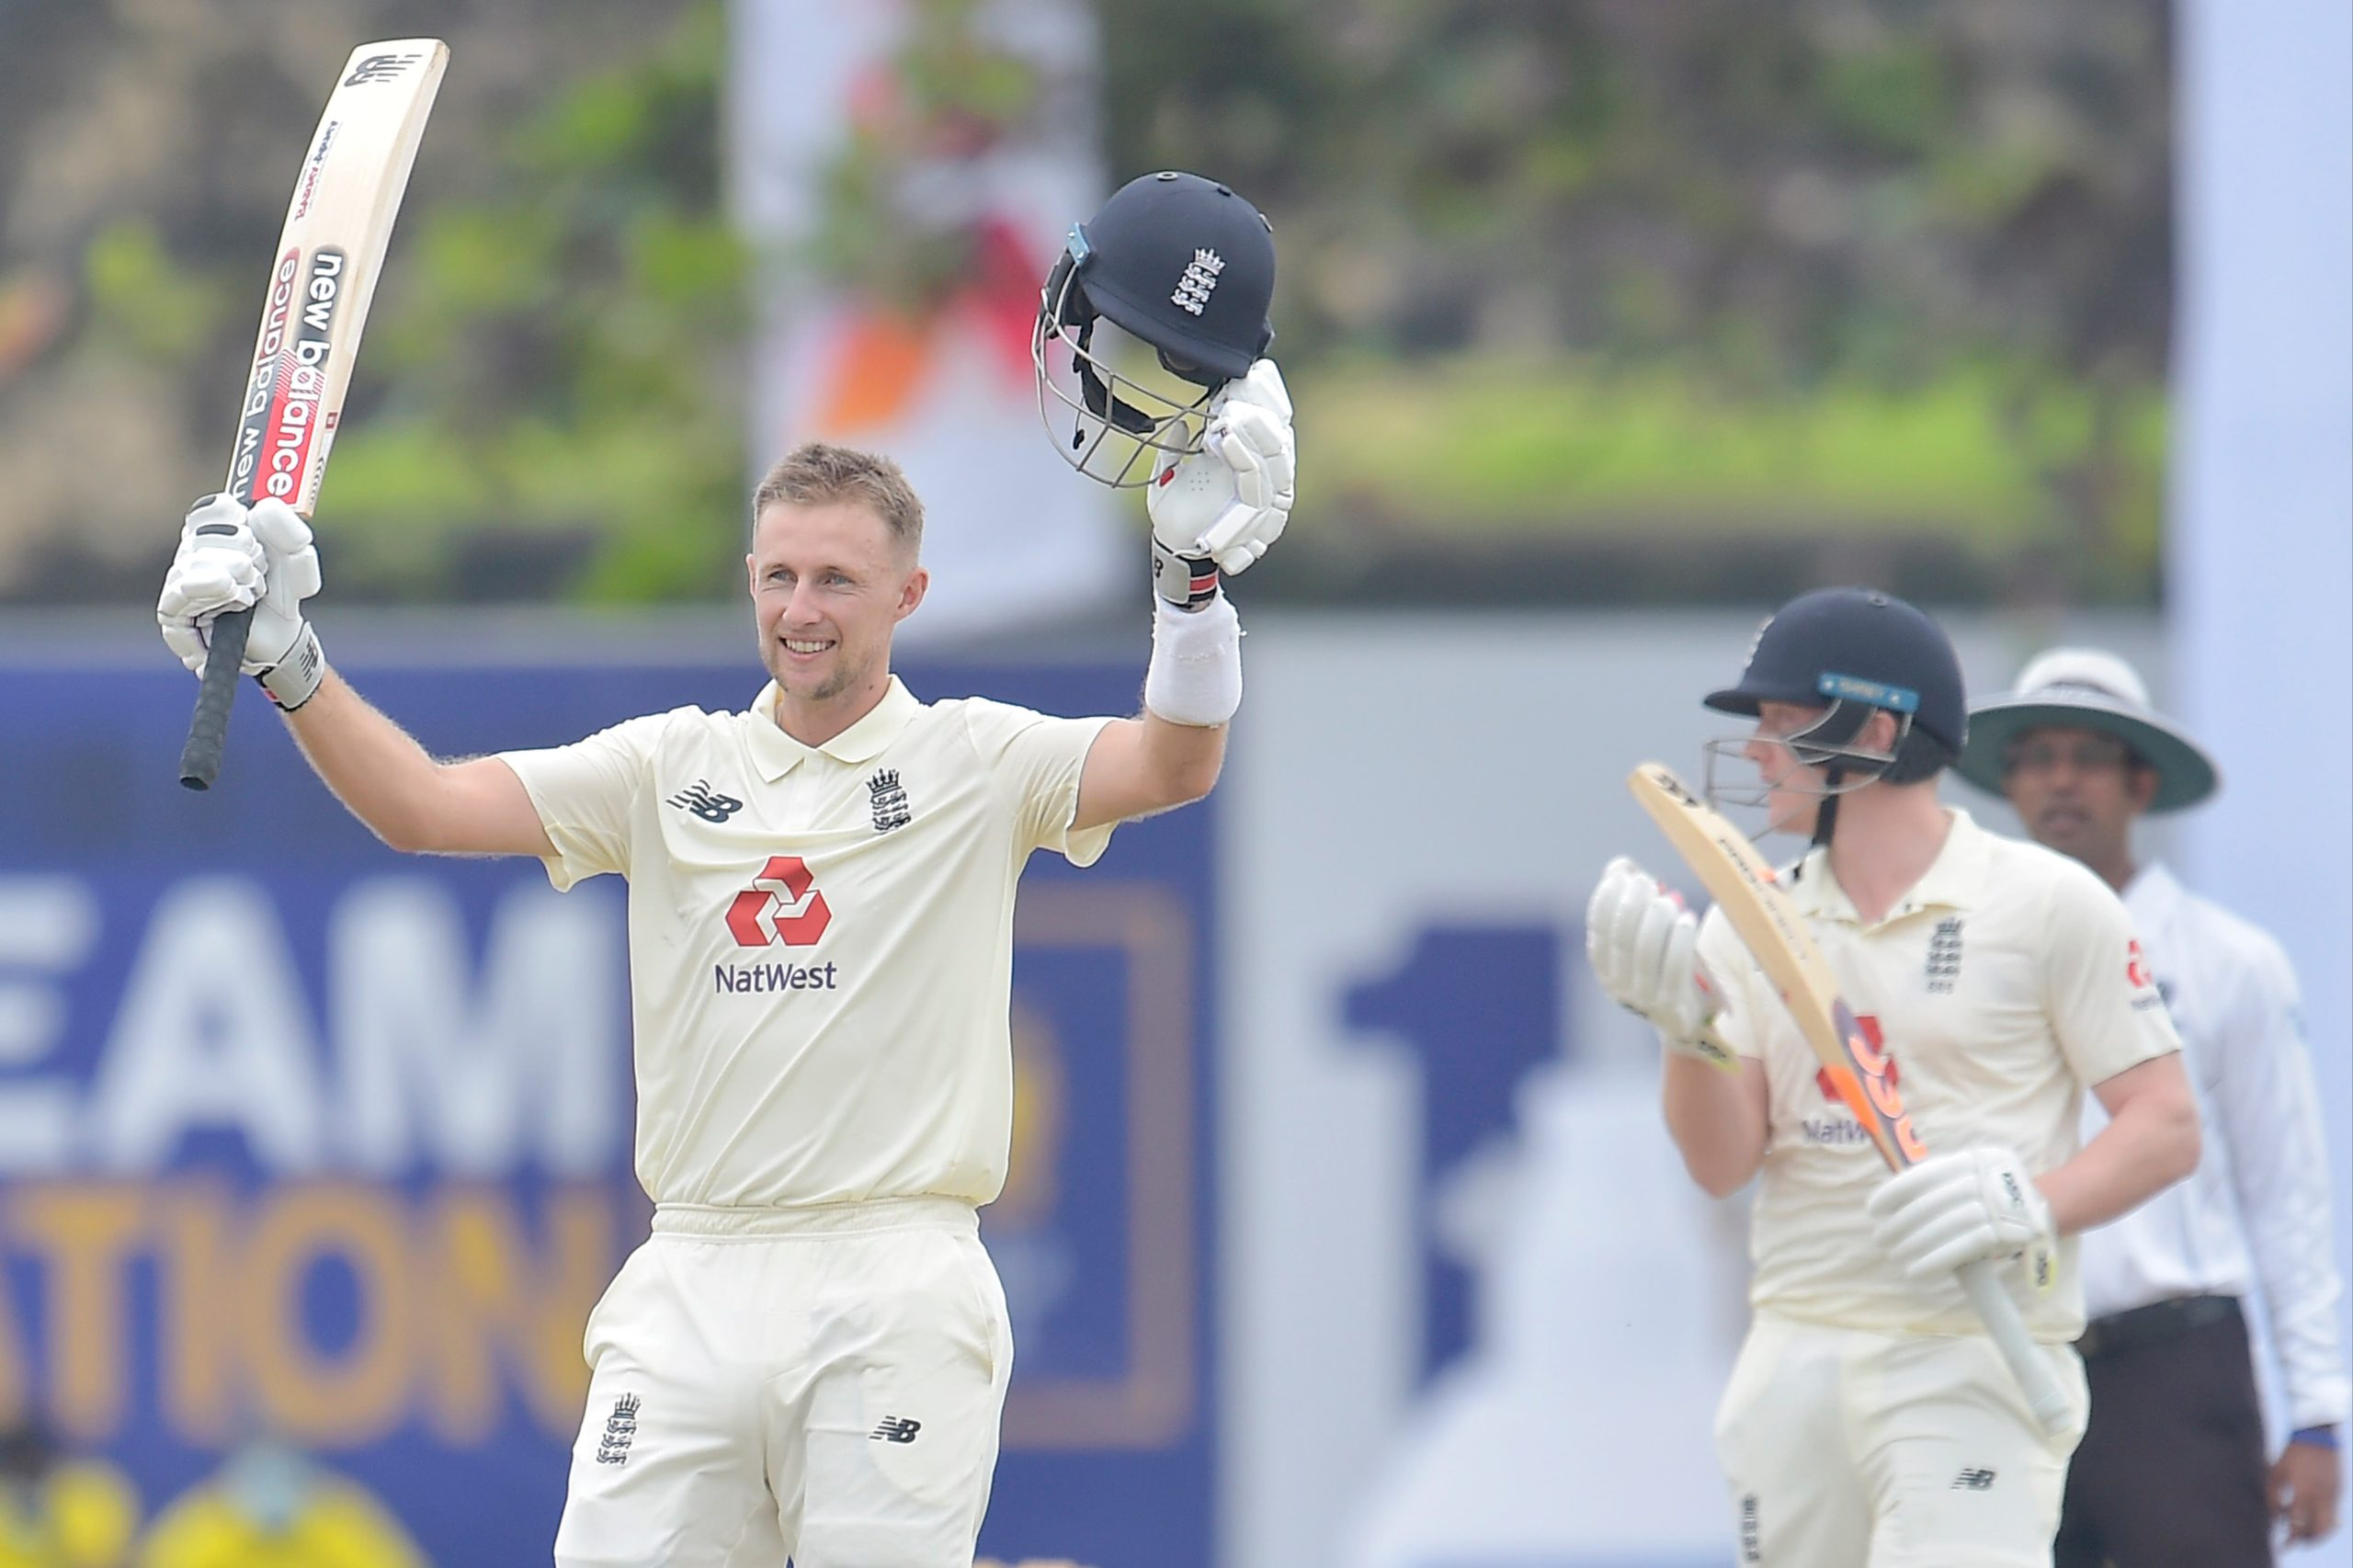 Joe Root becomes first England batsman to score double-century in Sri Lanka